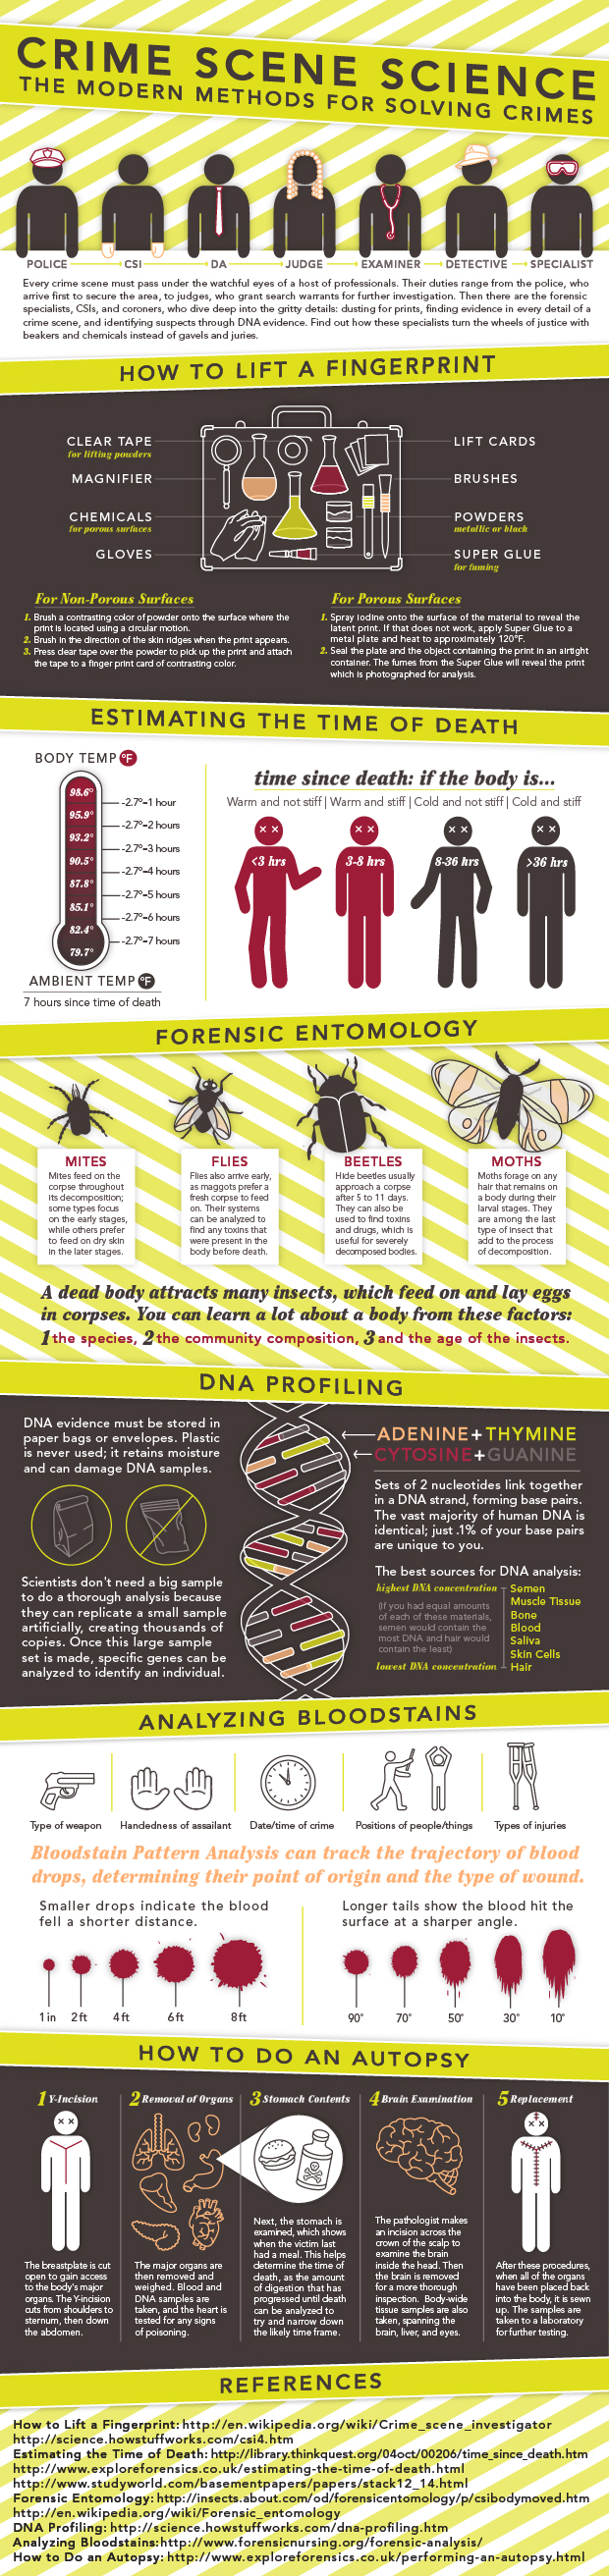 Crime Scene Science Infographic